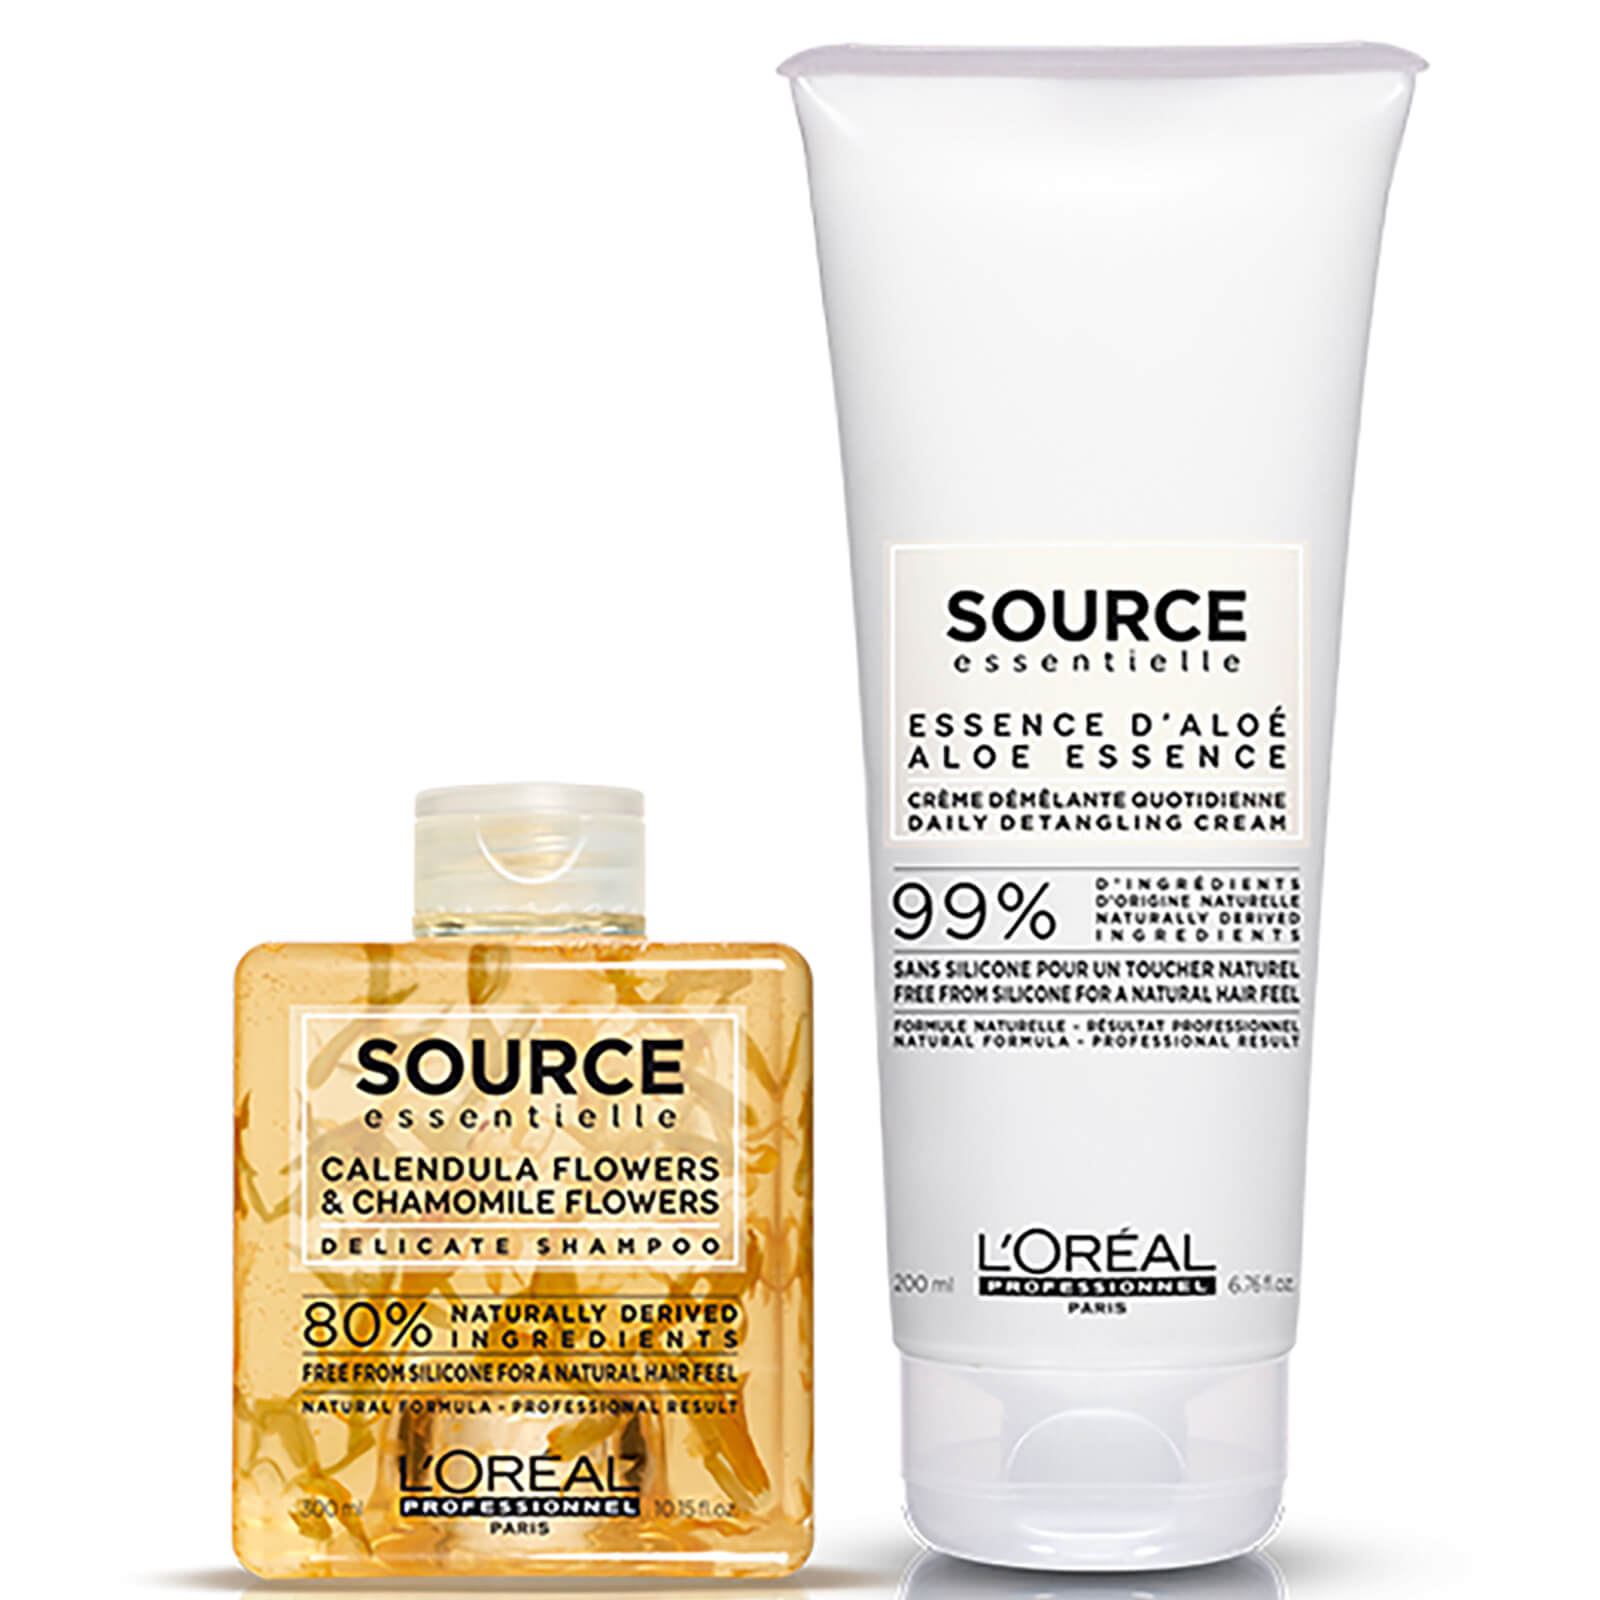 delicate shampoo, dry scalp, flaky scalp, healthy haircare, source essentielle, loreal professionnel, maple grove, plymouth, minnesota, minneapolis, natural hair, vegan, paraben free, silicone free, sulfate free